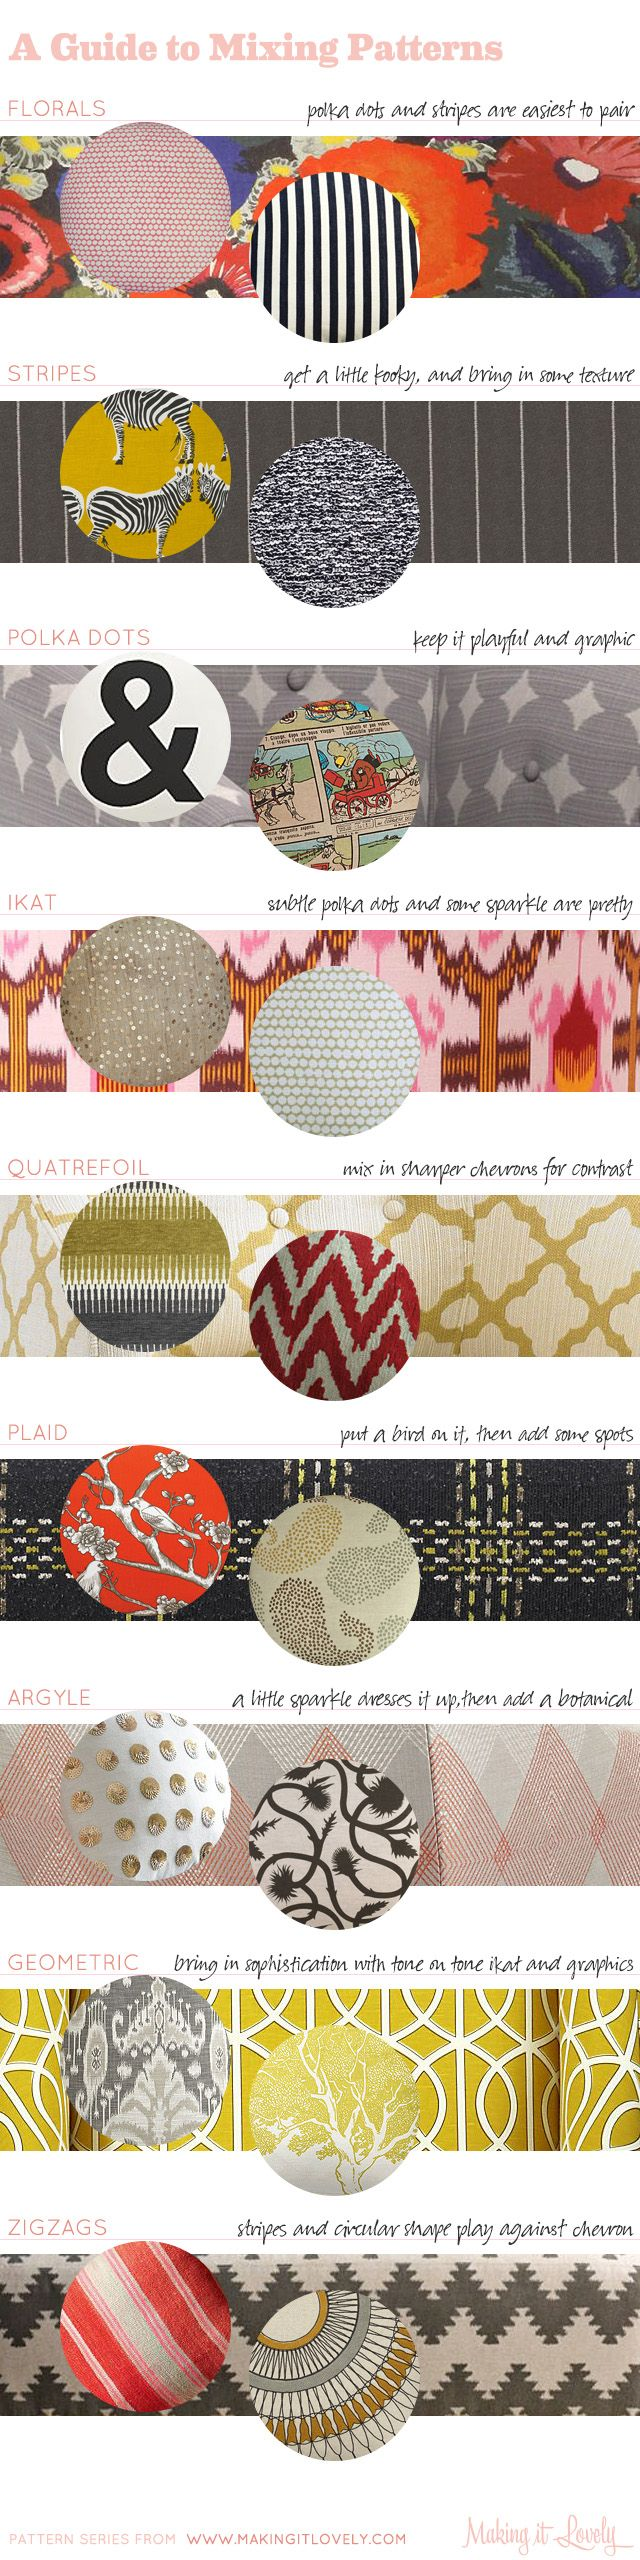 A guide to mixing patterns.  Making It Lovely